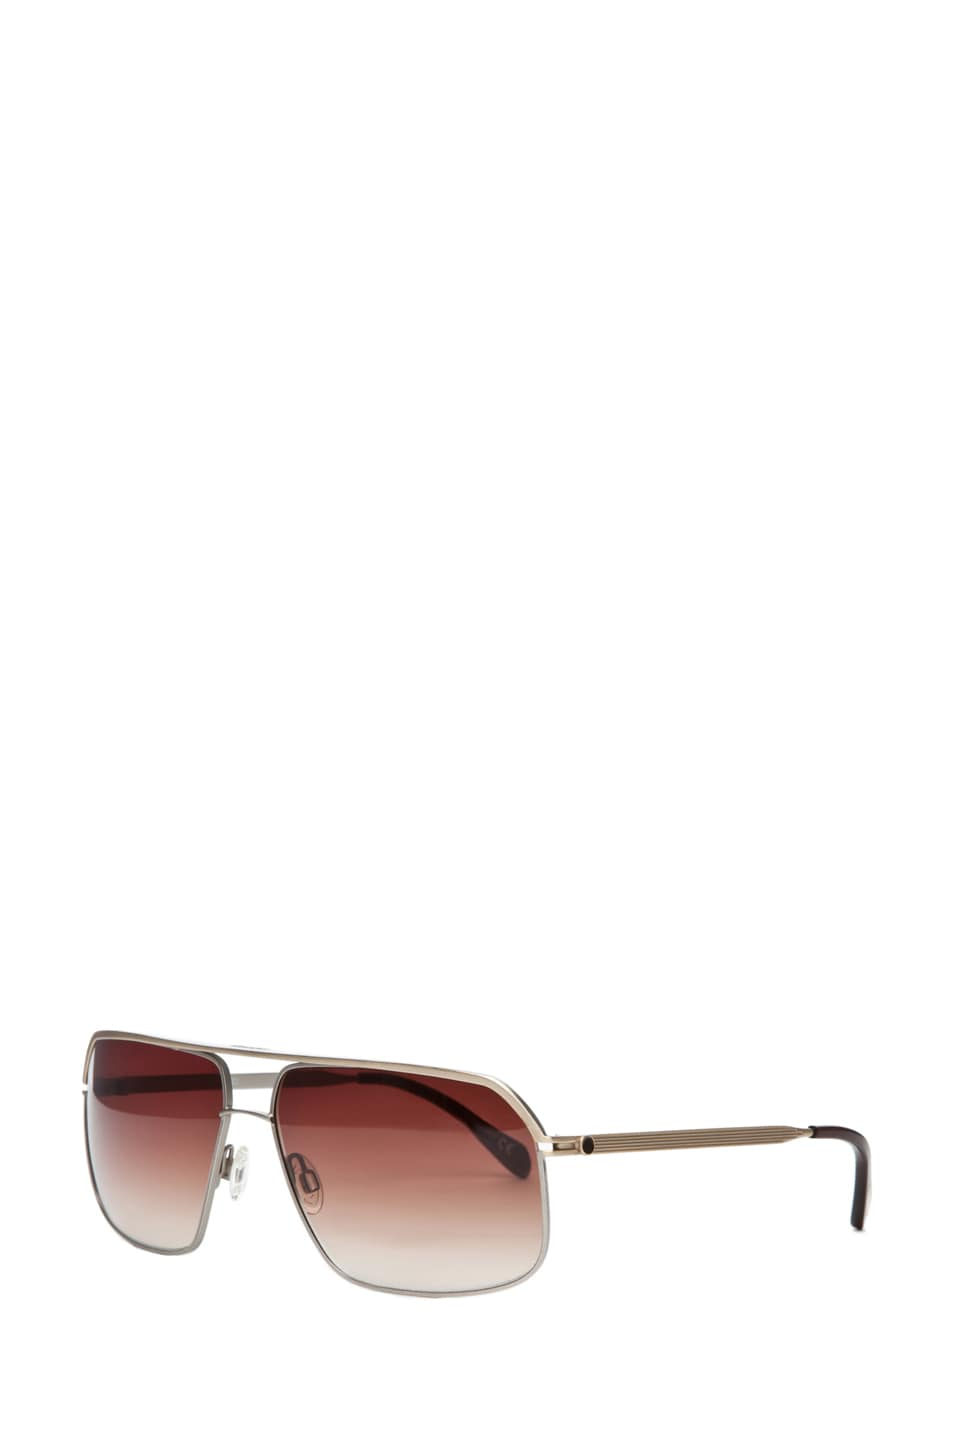 02ddba8687 Image 2 of Oliver Peoples Connolly in Brushed Gold